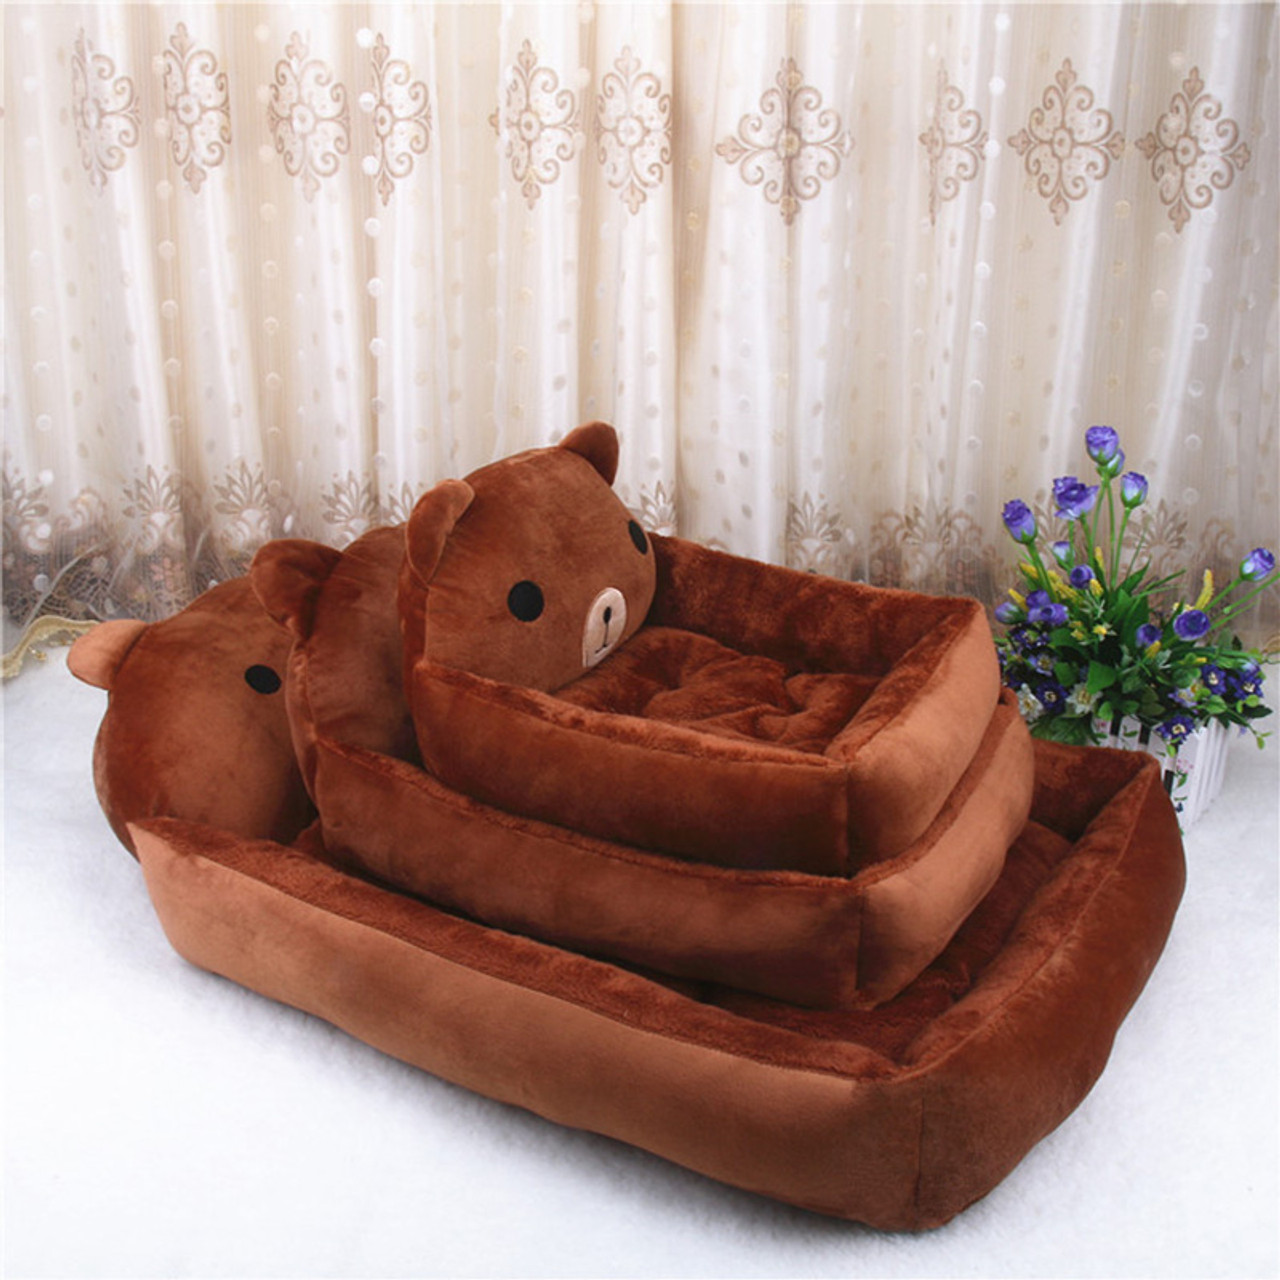 Picture of: Big Blanket Supplies Dog Bed Pp Cotton Cute Animal Cartoon Shaped Warming Cat House Dog Beds